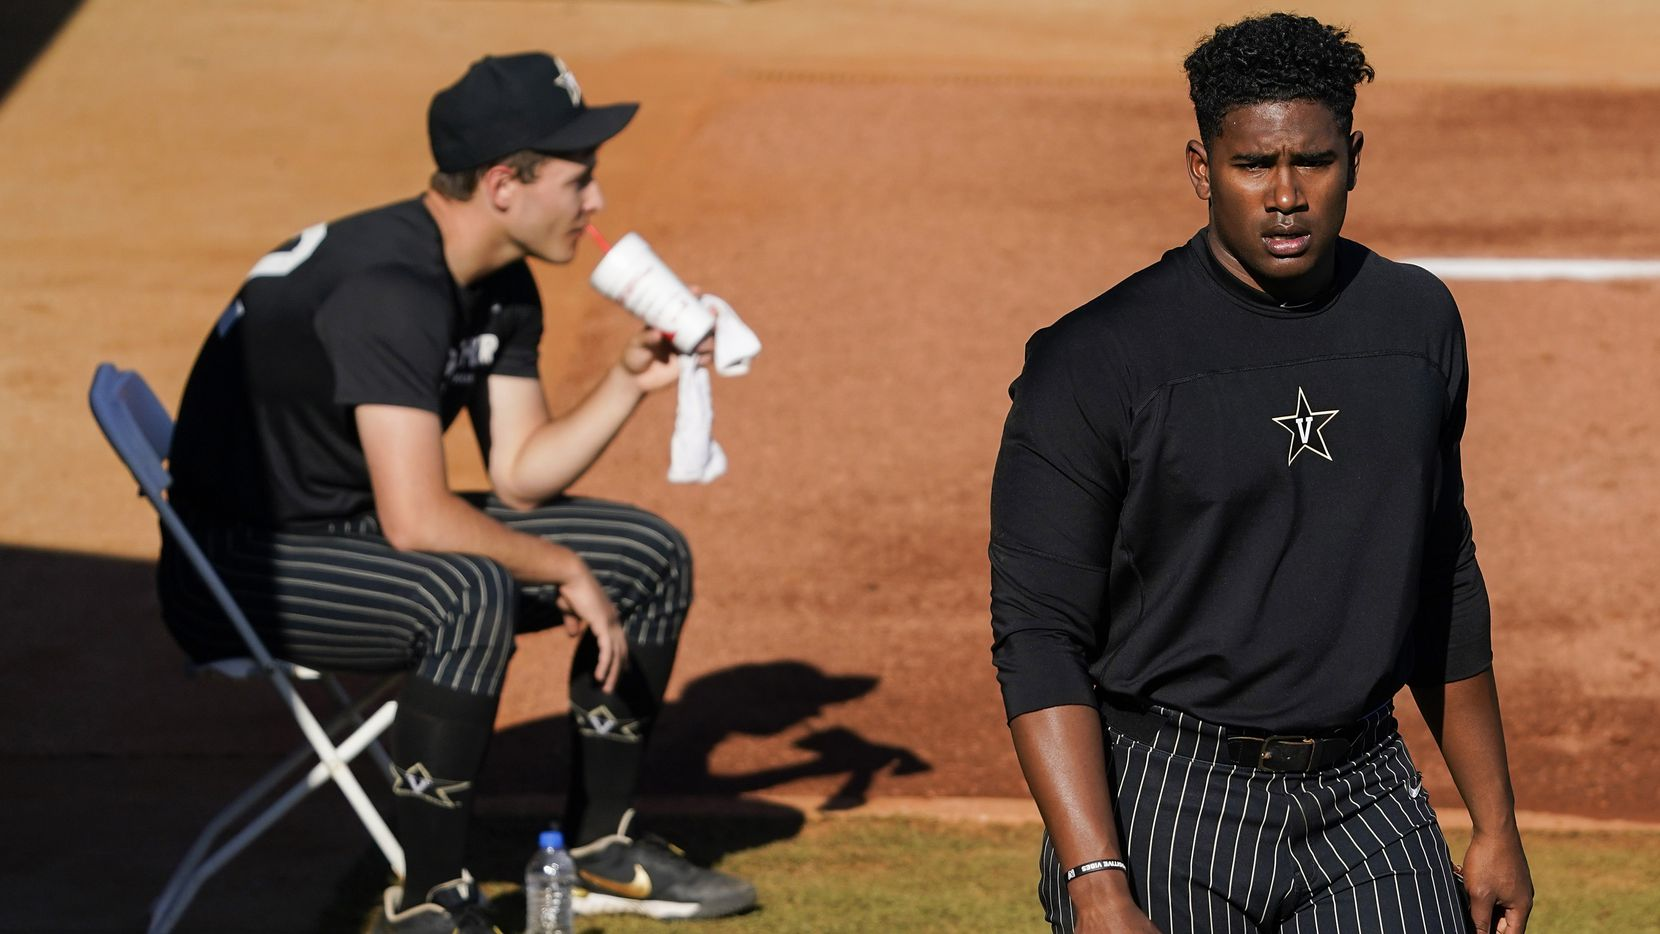 Vanderbilt pitcher Kumar Rocker warms up as fellow pitcher Jack Leiter sips a smoothie in the bullpen before an NCAA baseball game against Mississippi at Swayze Field on Friday, May 14, 2021, in Oxford, Miss.